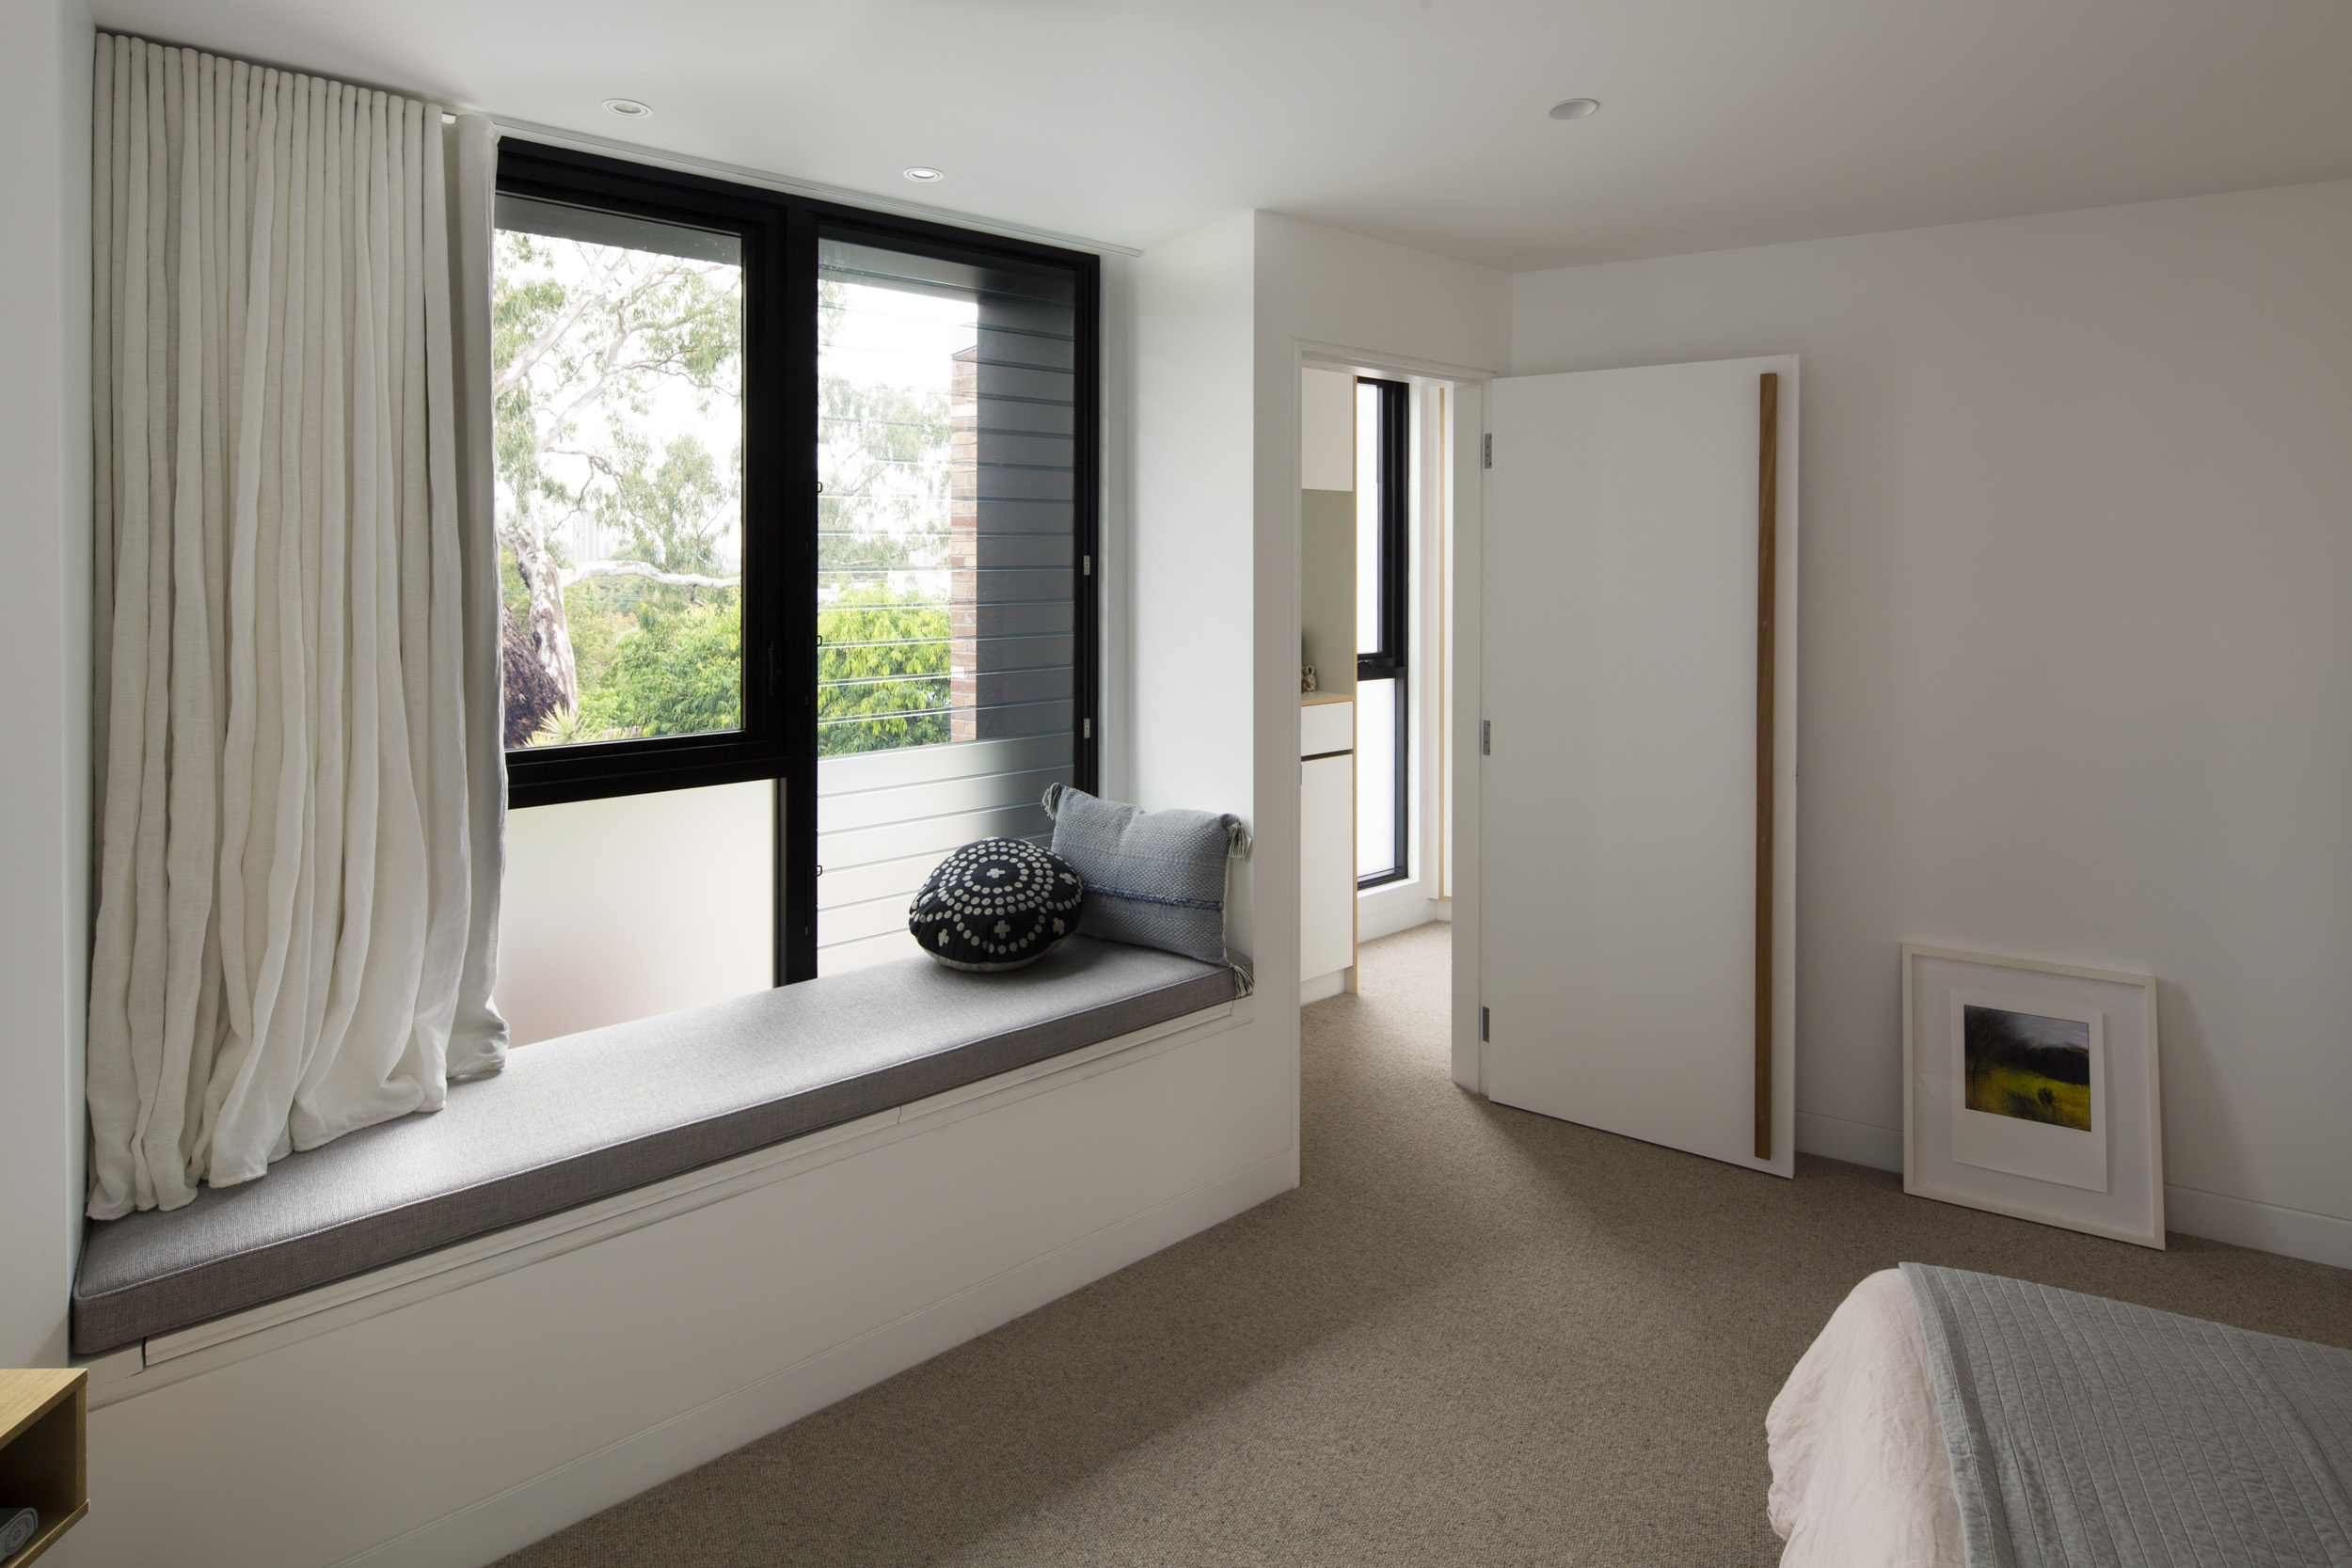 residential_architects_sq_projects_sydney_04.jpg